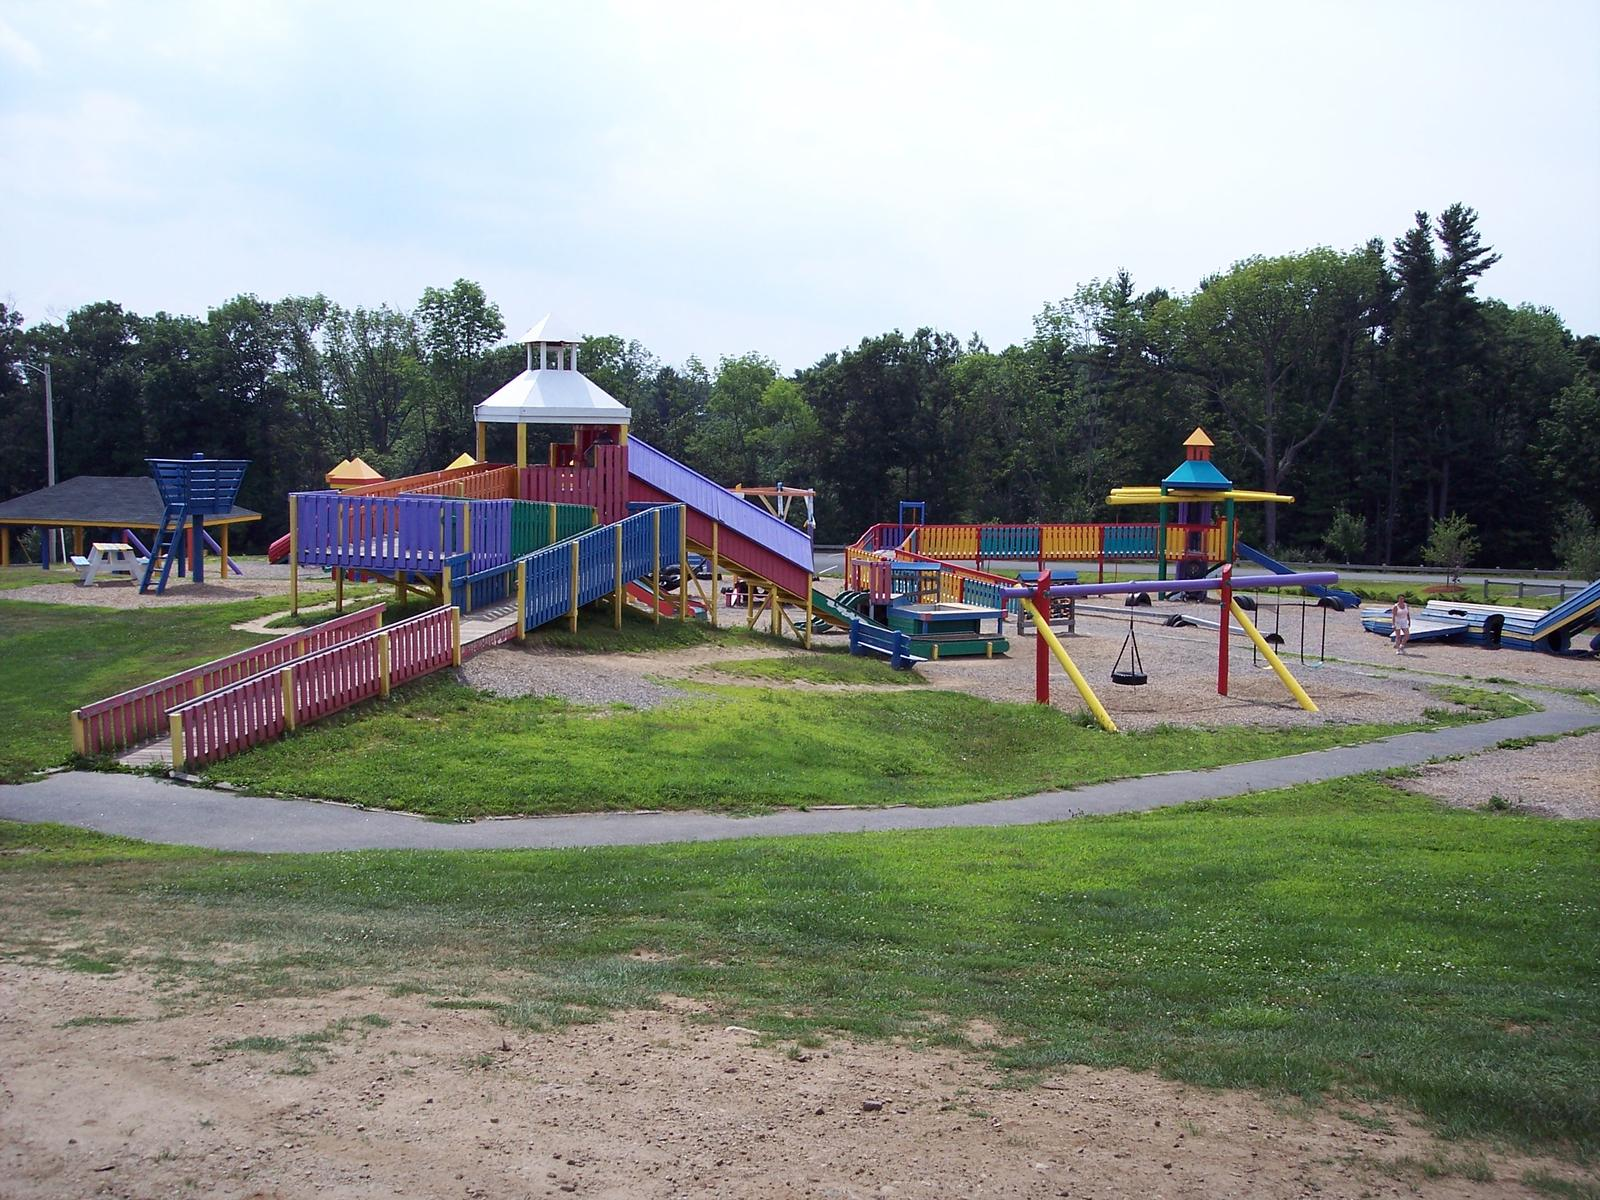 Where Are The Best Playgrounds Manchester Concord Daycare - 15 of the worlds coolest playgrounds